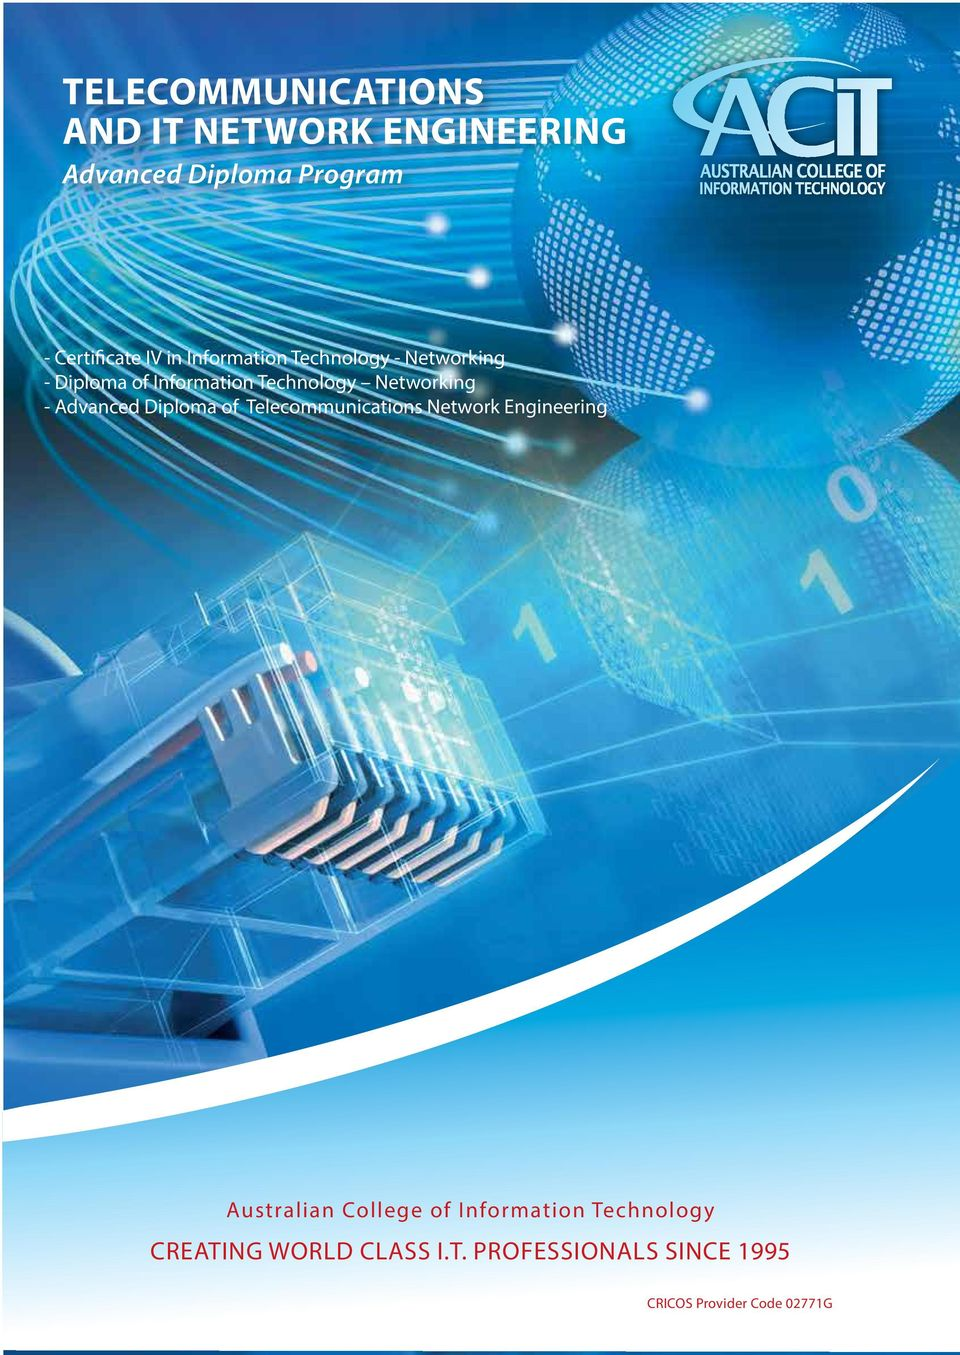 Advanced Diploma of Telecommunications Network Engineering Australian College of